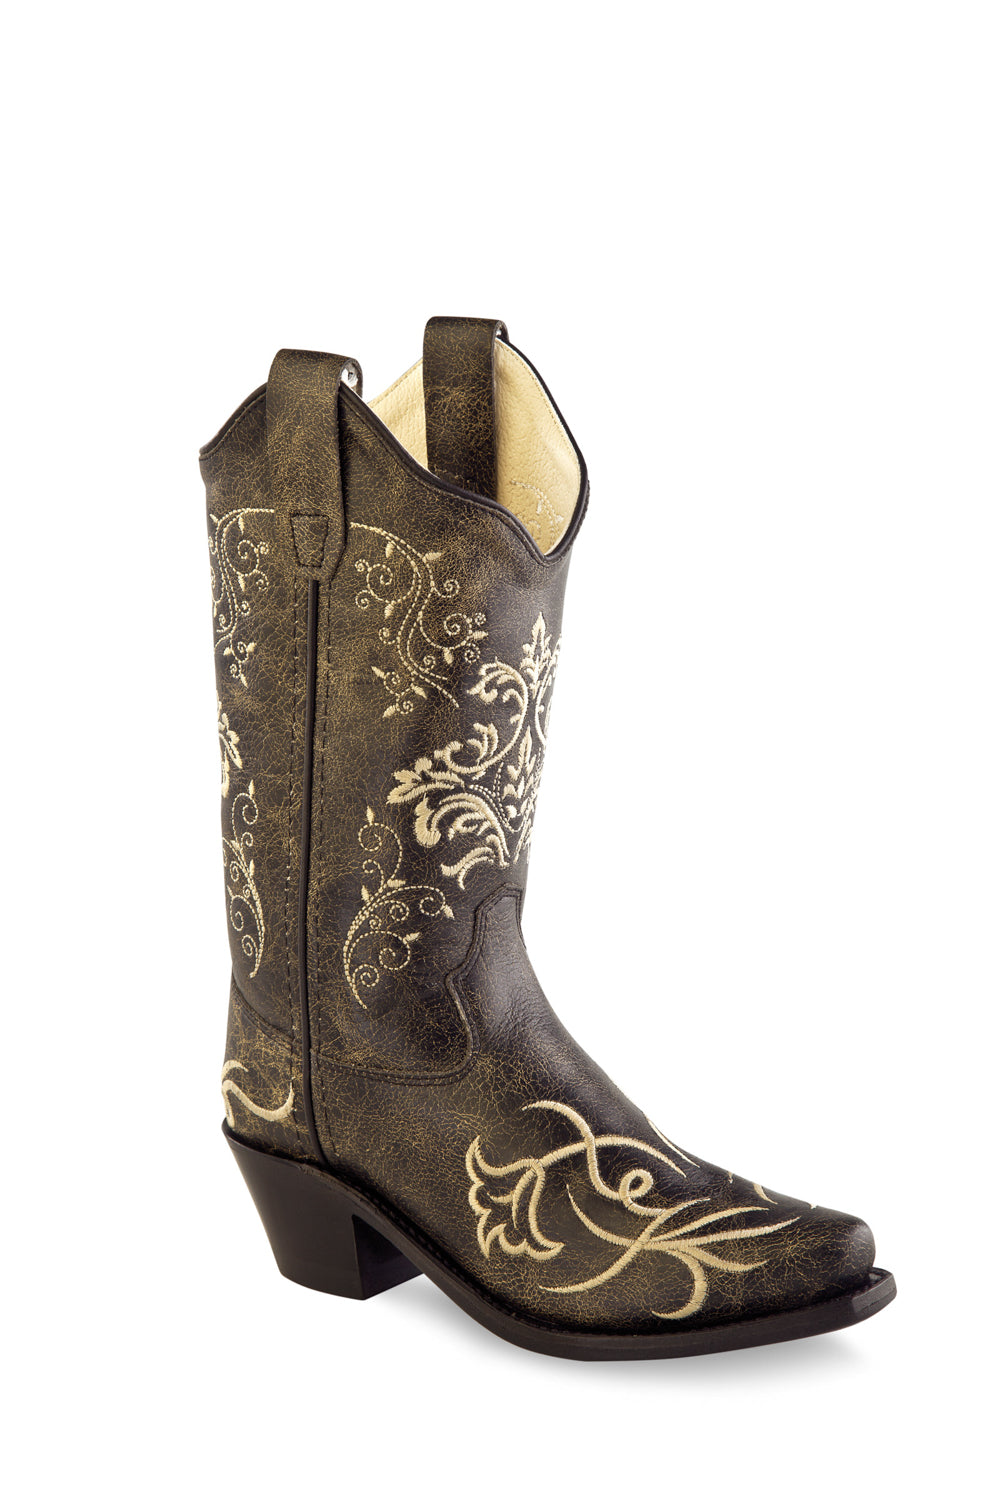 d0c49e007a7 Old West Brown Kids Girls Leather 8in Floral Cowboy Boots